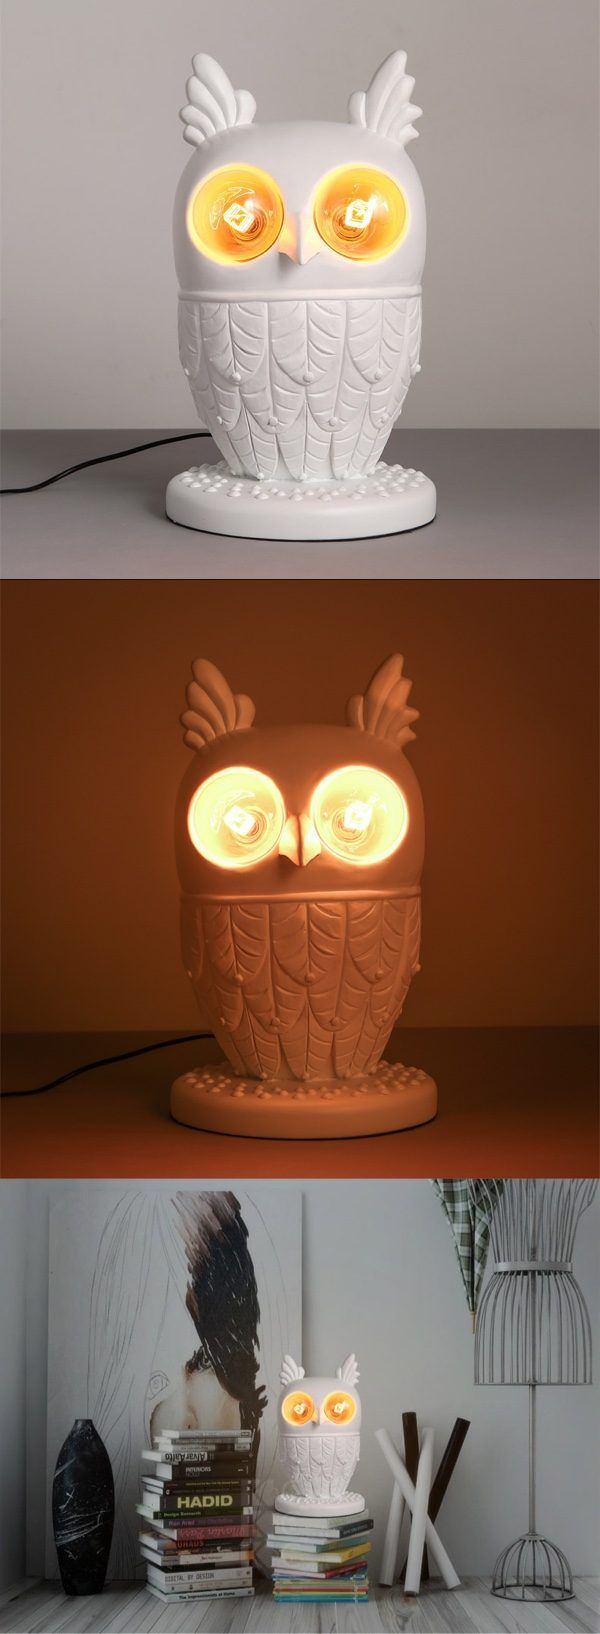 Vintage owl lamps - 50 Owl Home Decor Items Every Owl Lover Should Have